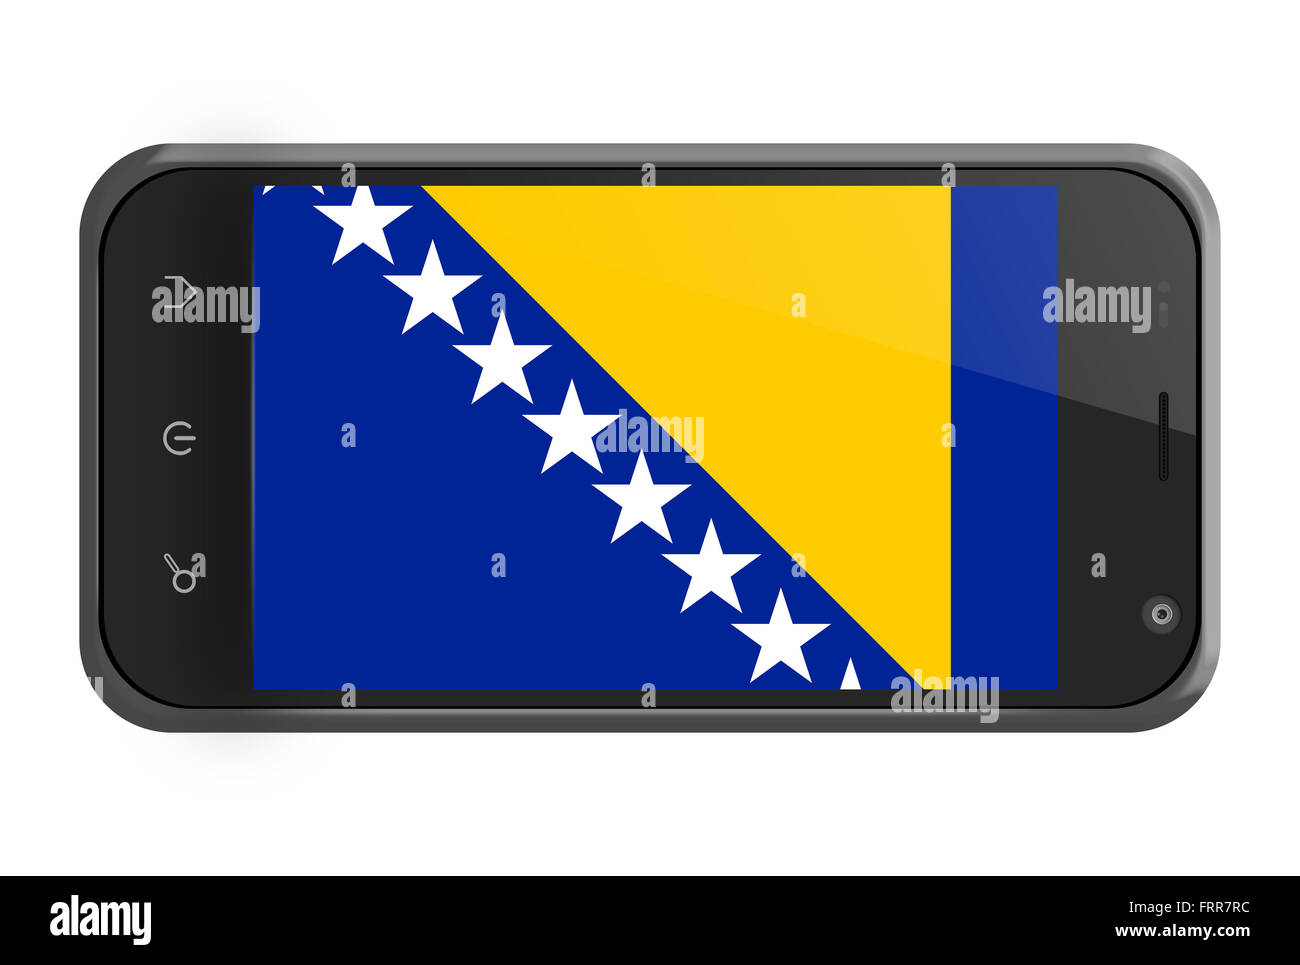 Bosnia and Herzegovina flag on smartphone screen isolated on white - Stock Image